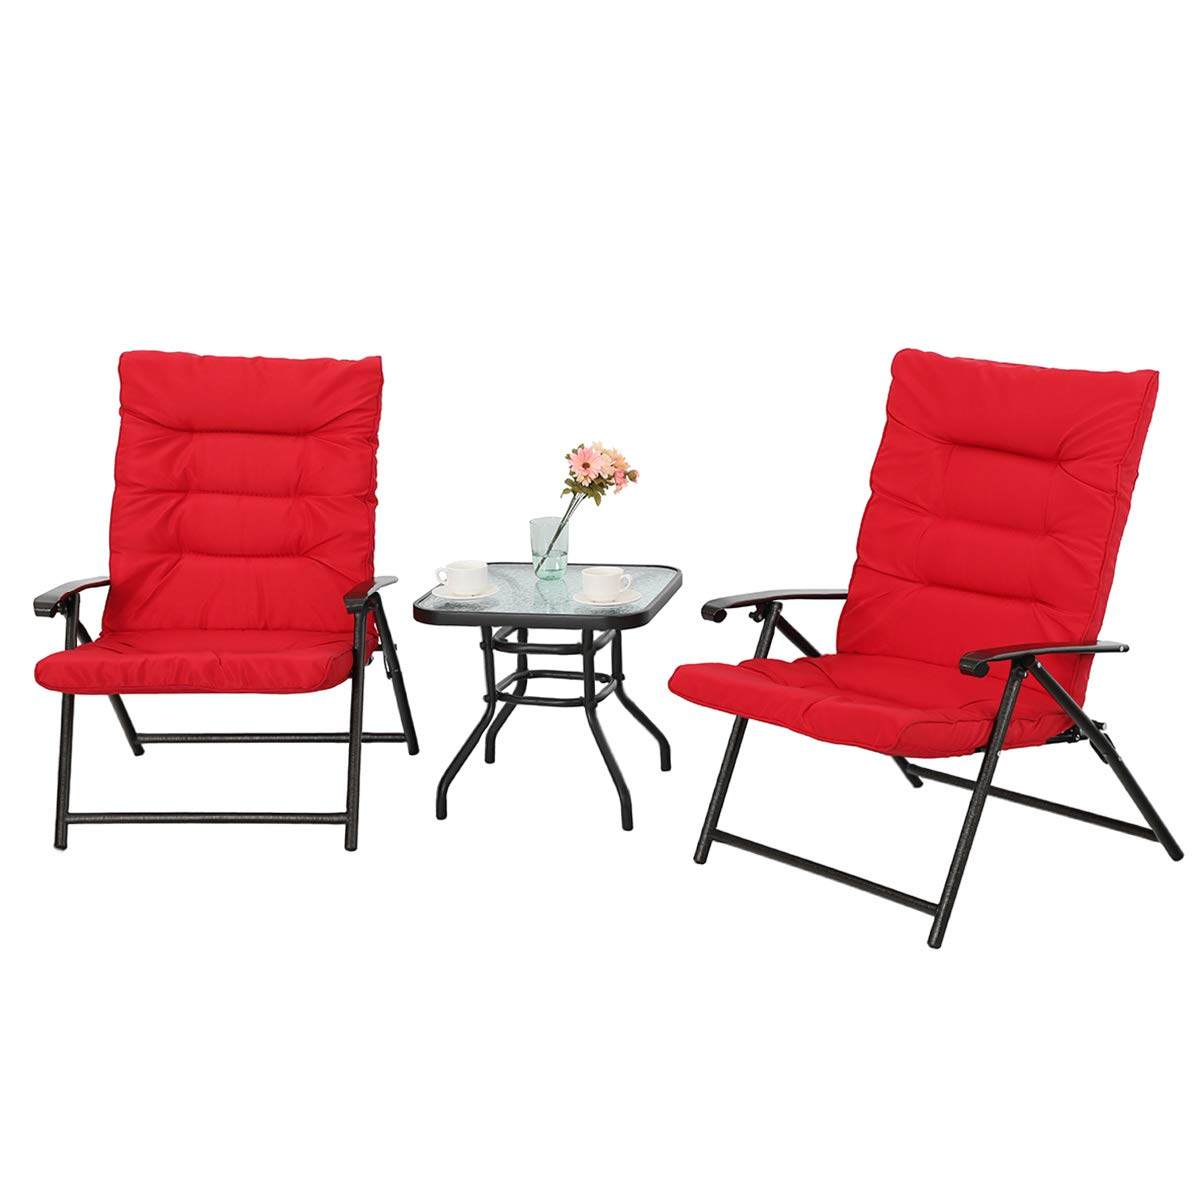 PHI VILLA 3 PC Padded Folding Bistro Set Patio Adjustable Reclining Indoor Outdoor Furniture, Red by PHI VILLA